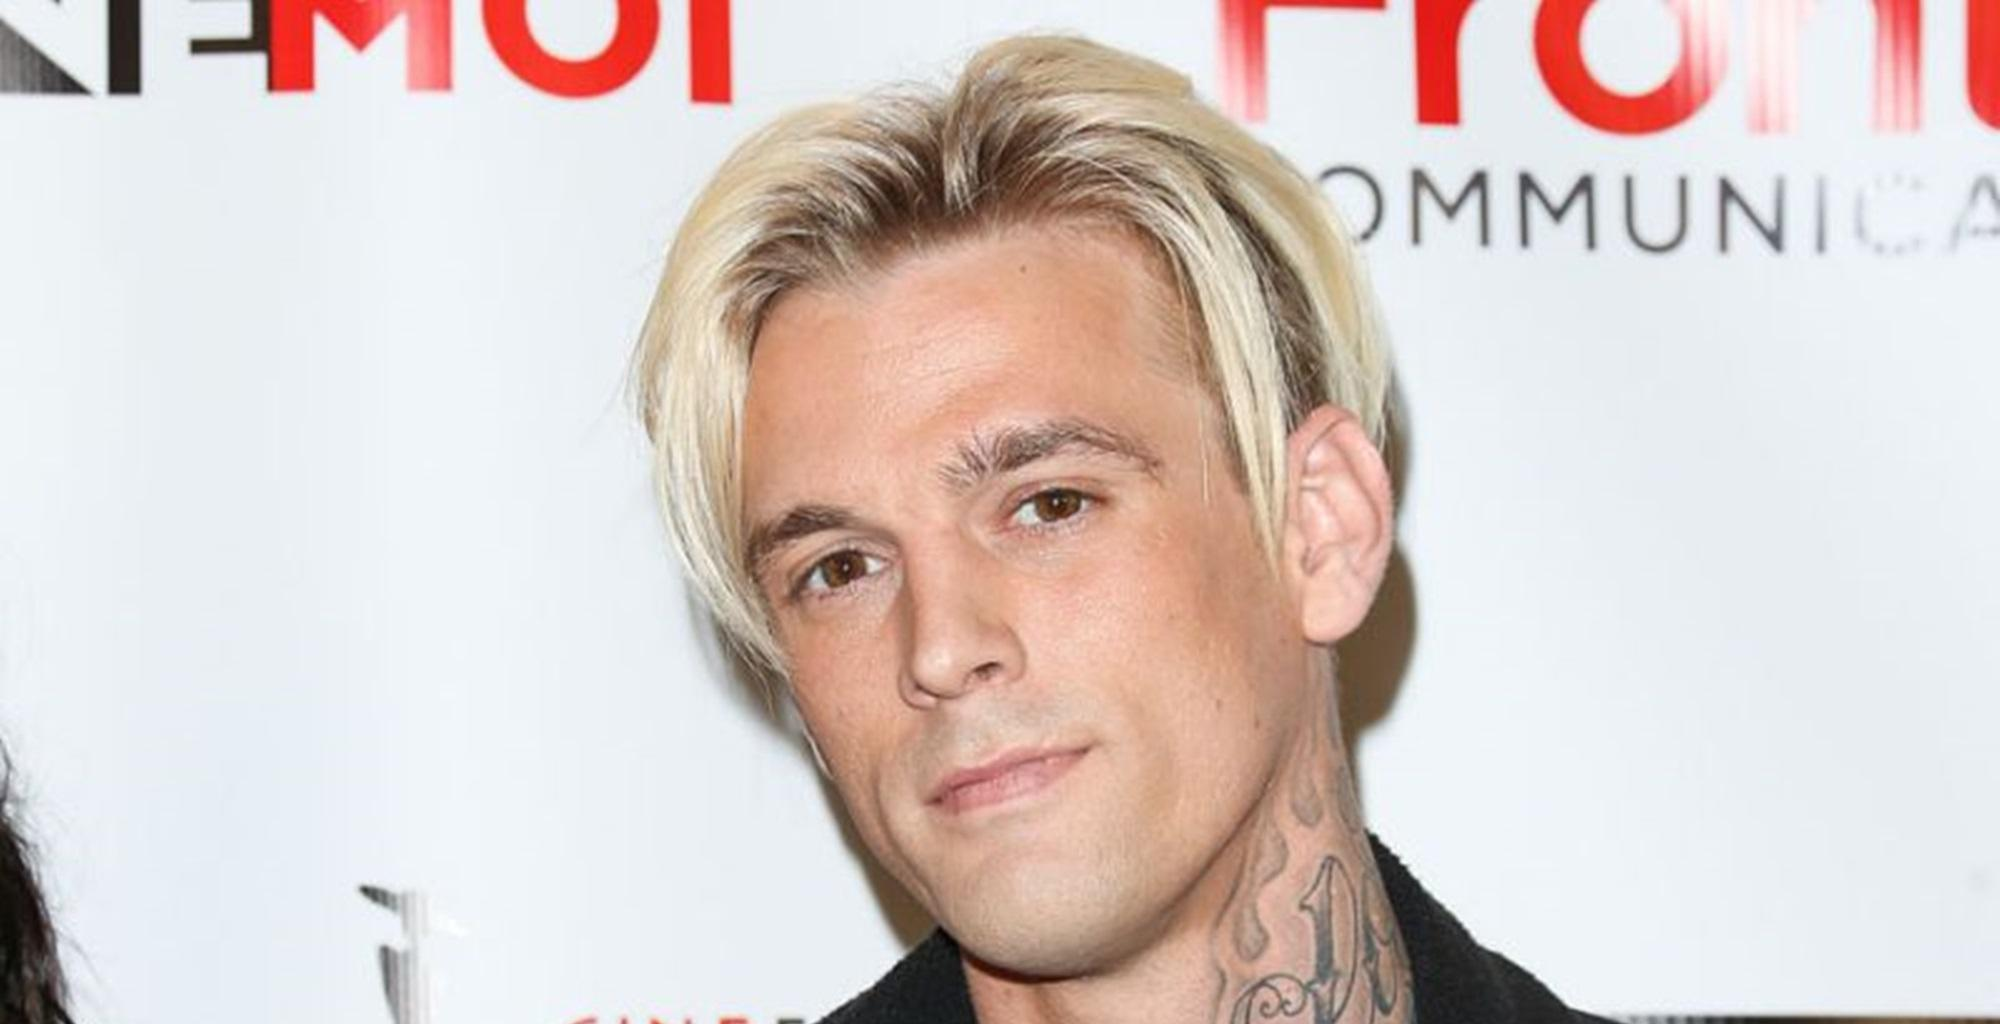 Aaron Carter Takes Drastic Measures To Get Better After Claiming His Sister Raped Him And Fighting With Siblings Angel And Nick Carter